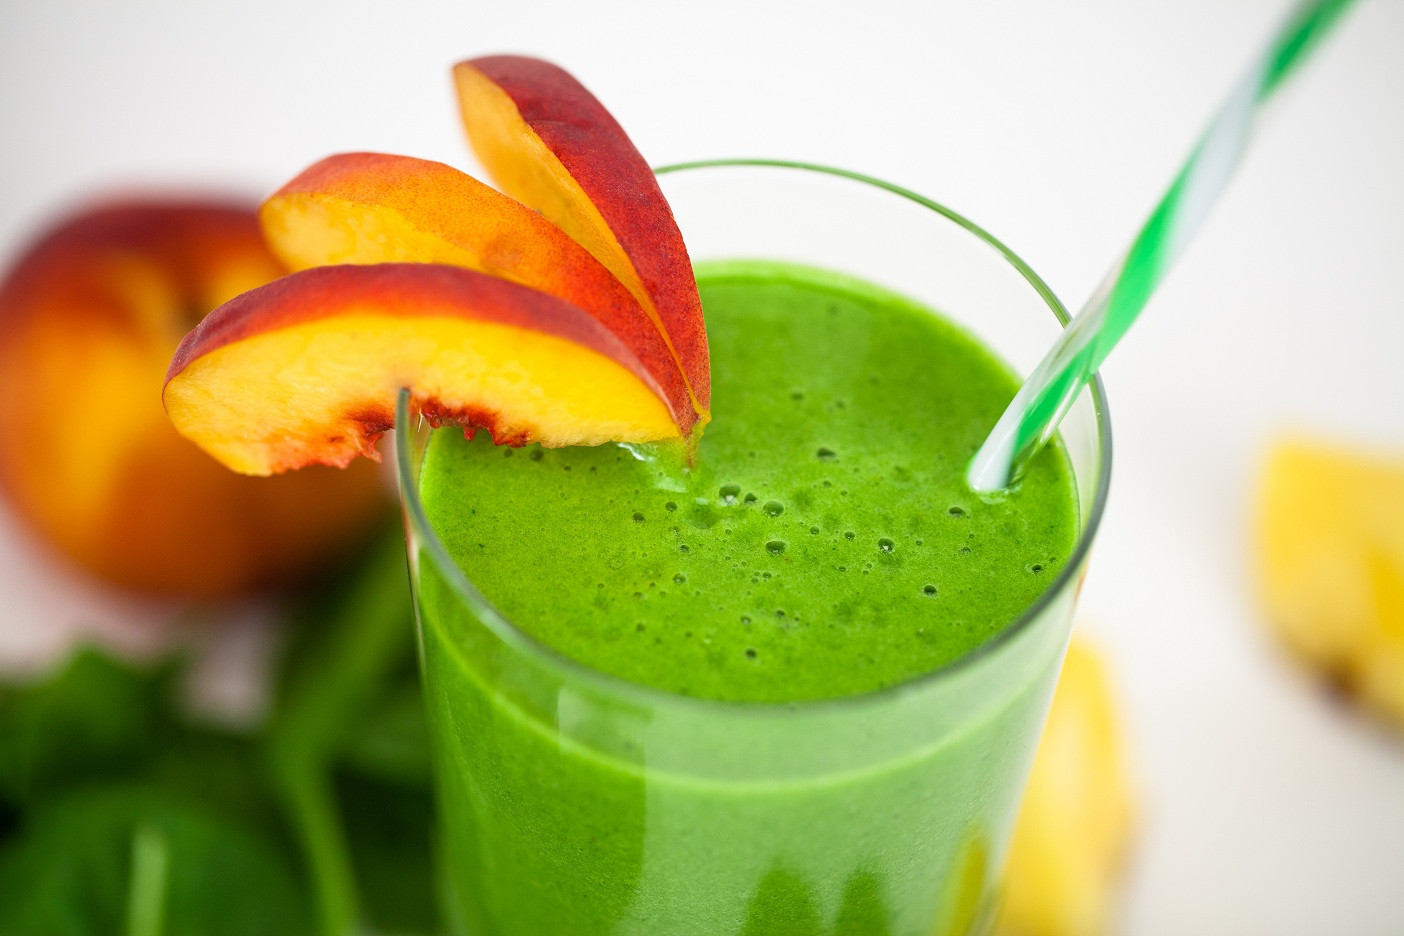 Jj Green Smoothies  SMOOTHIE BAR BLISS&OASIS LIFE STYLE CENTRE BONAIRE